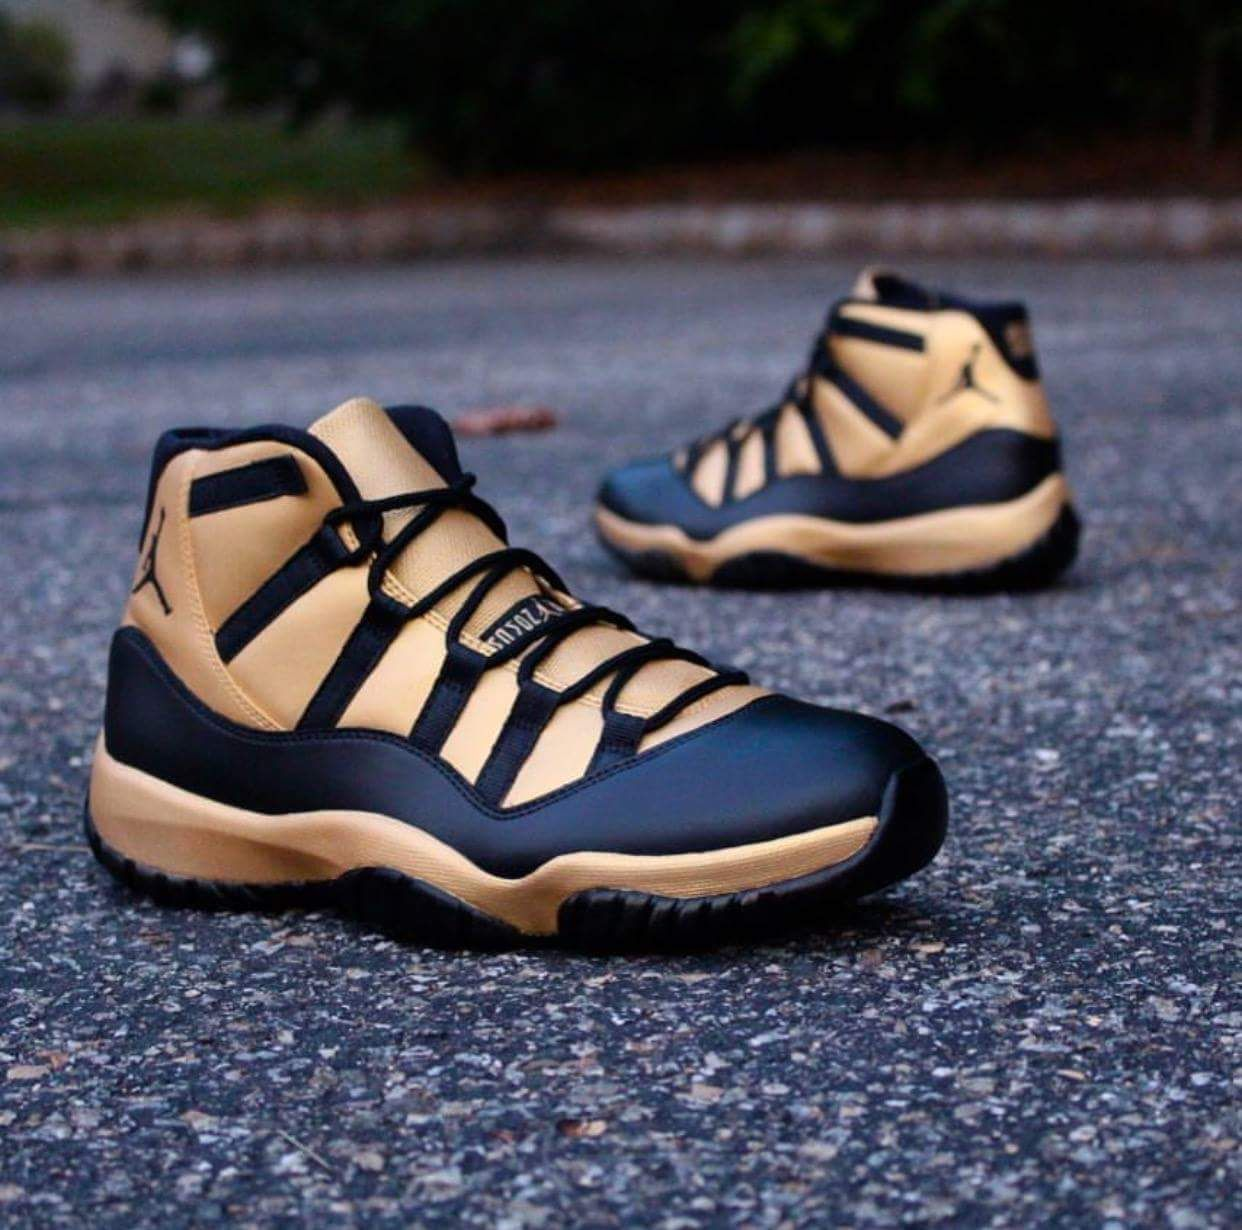 new arrival 1d7bd e02d2 Air jordan 11 custom black  gold